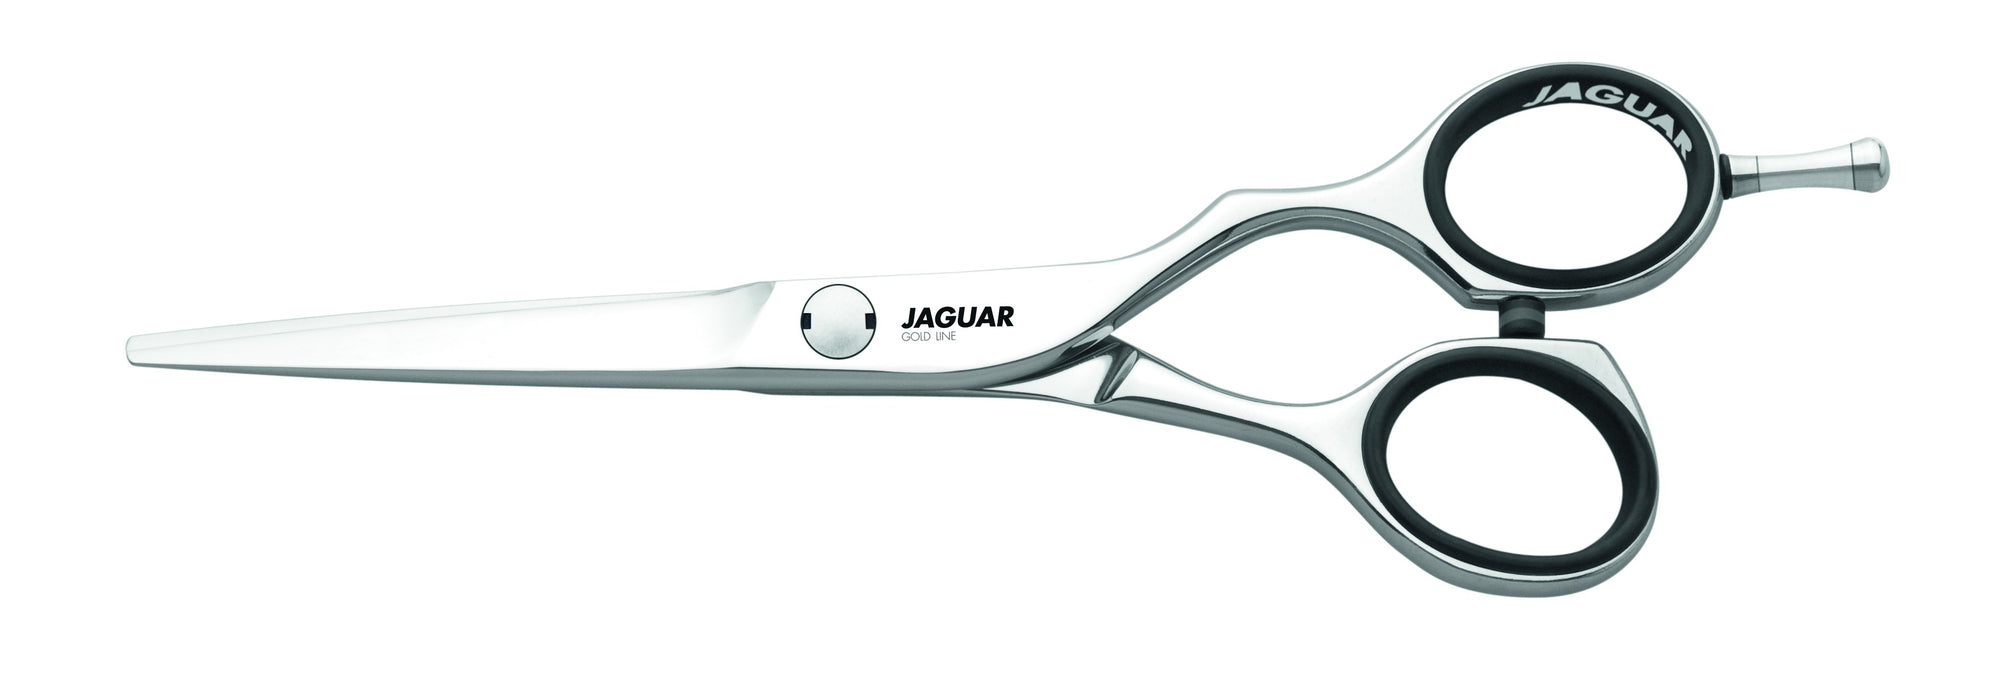 Jaguar Diamond E 5 inch (4396670156883)